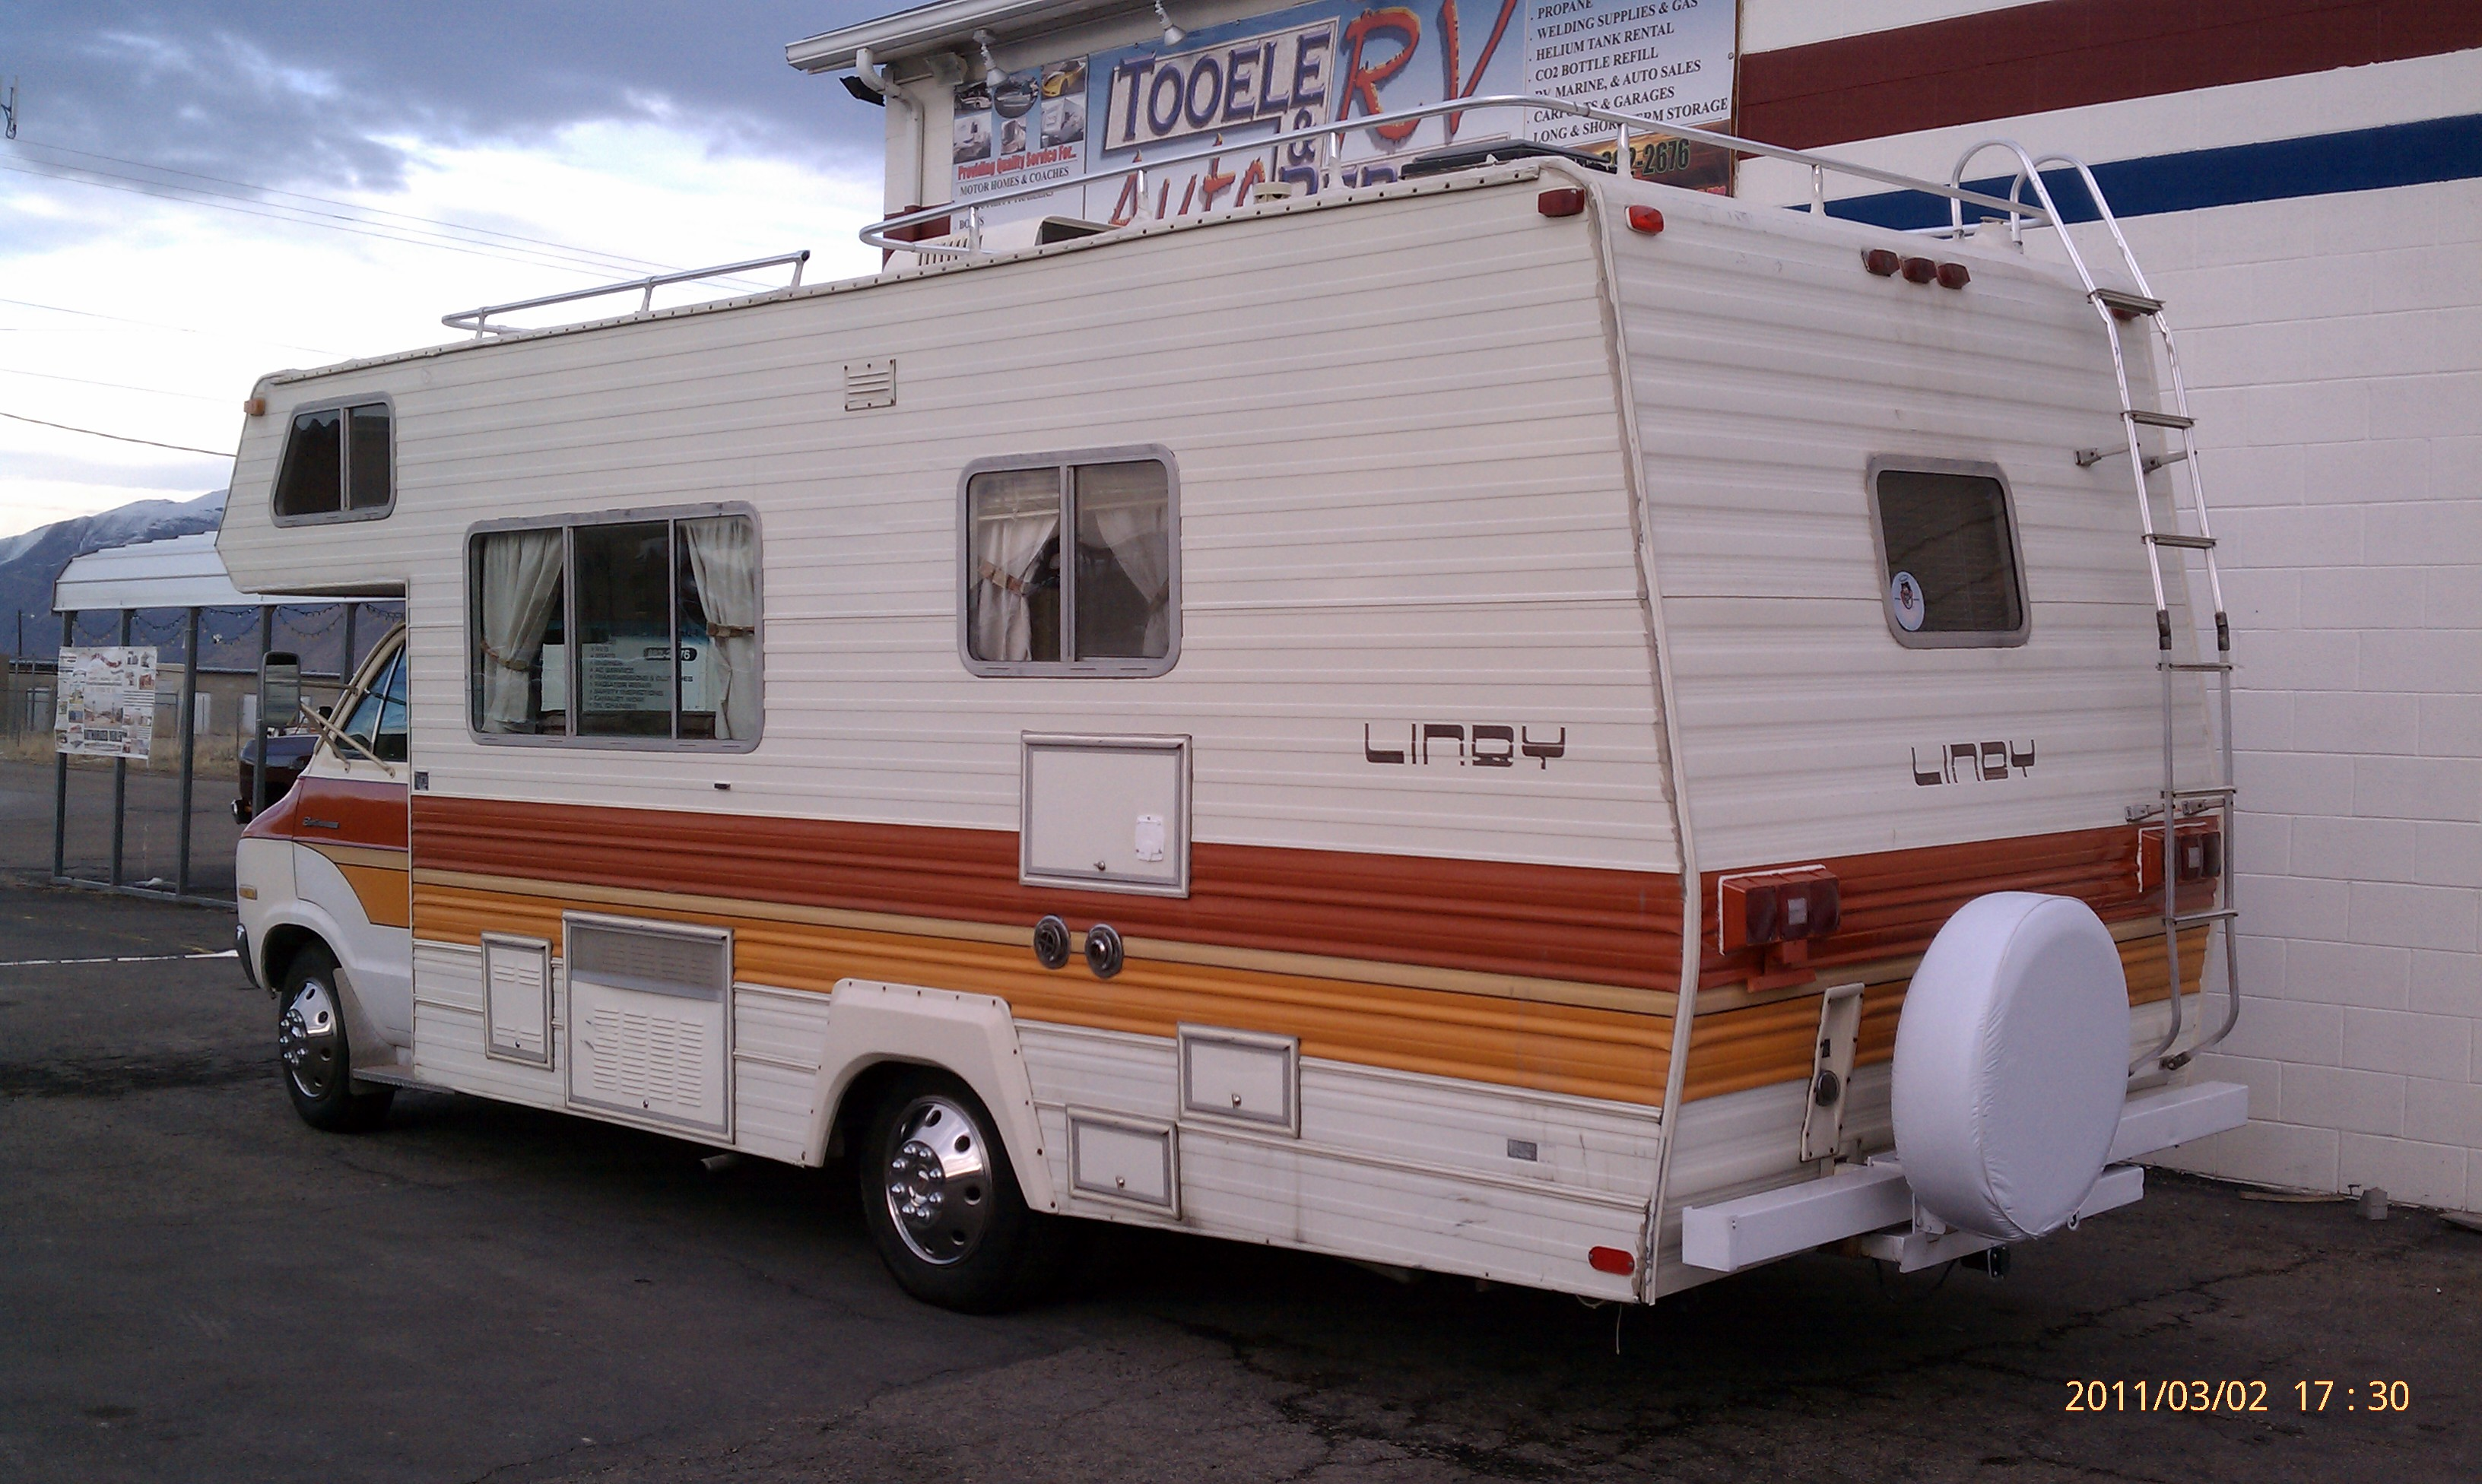 1977 Dodge Sportsman Motorhome http://www.zuoda.net/search.aspx?q=dodge+sportsman&offset=200